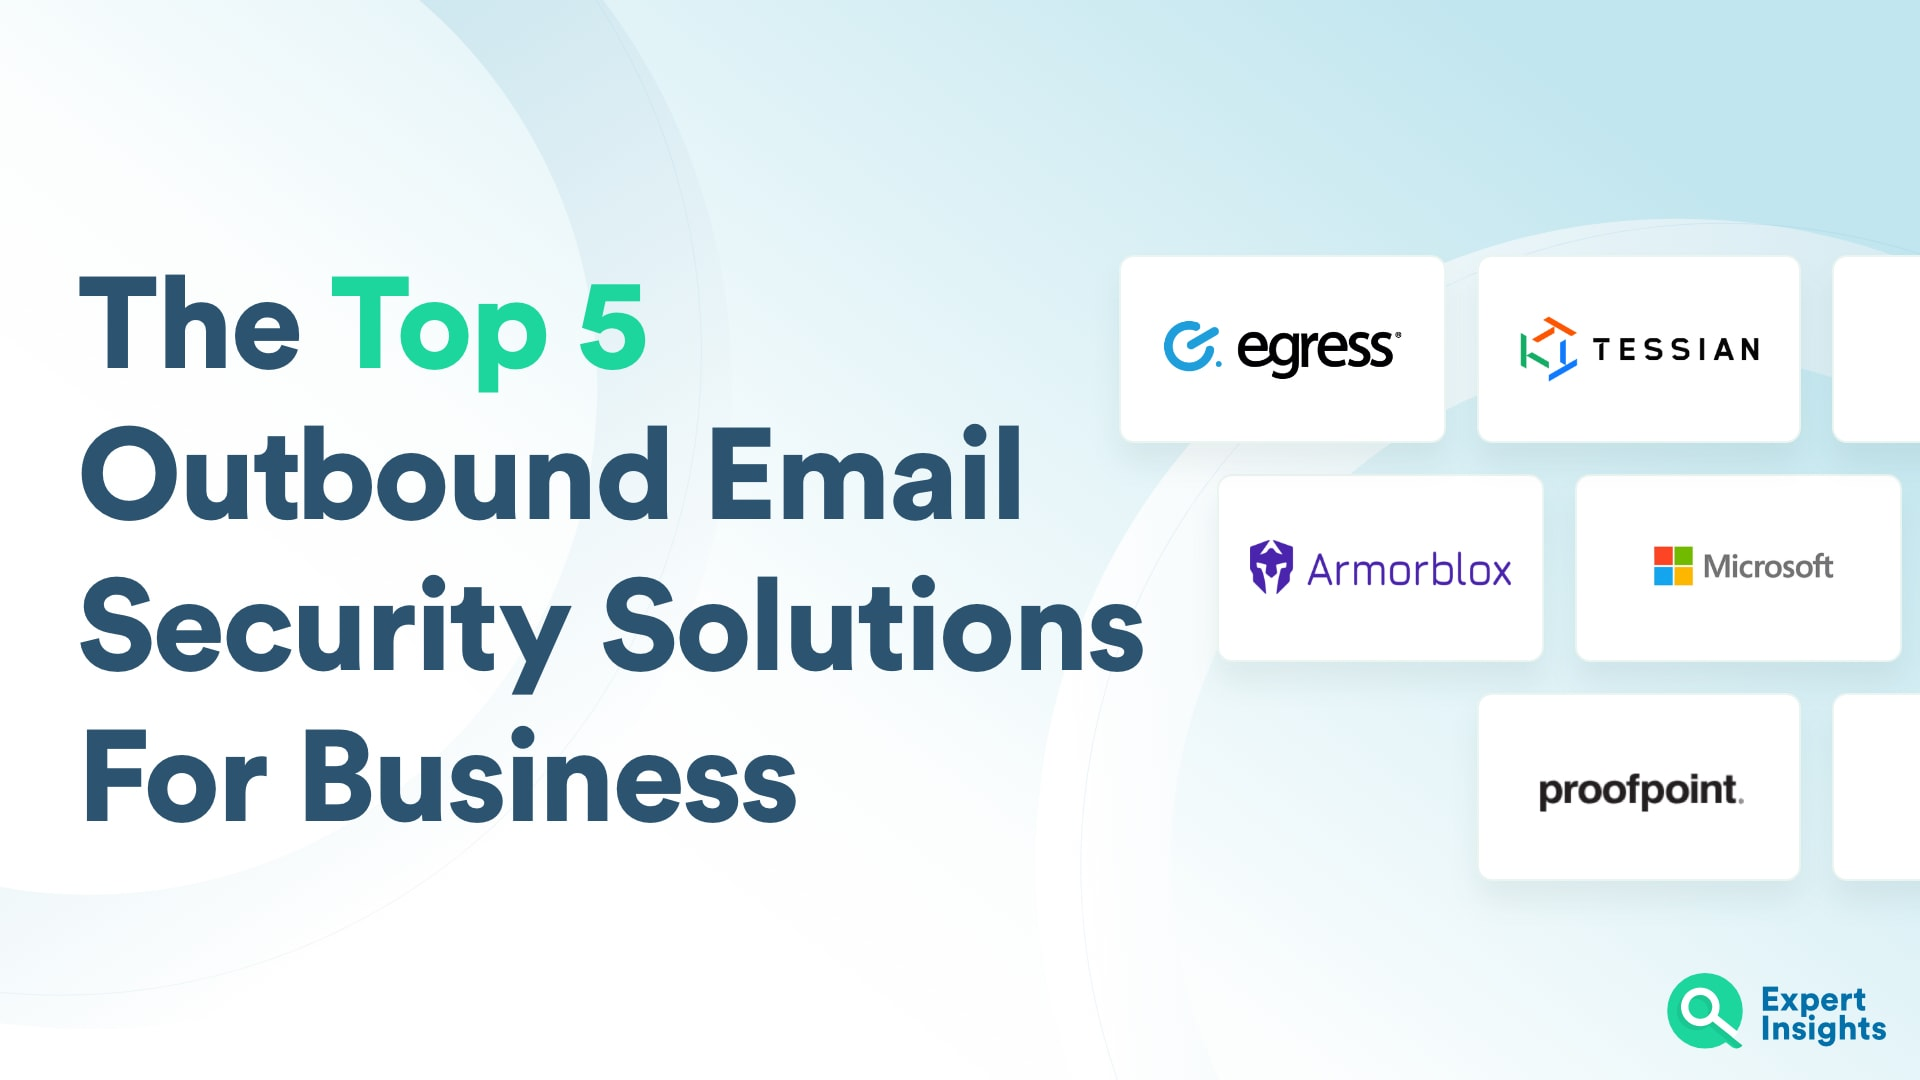 Top Outbound Email Security Solutions for Business